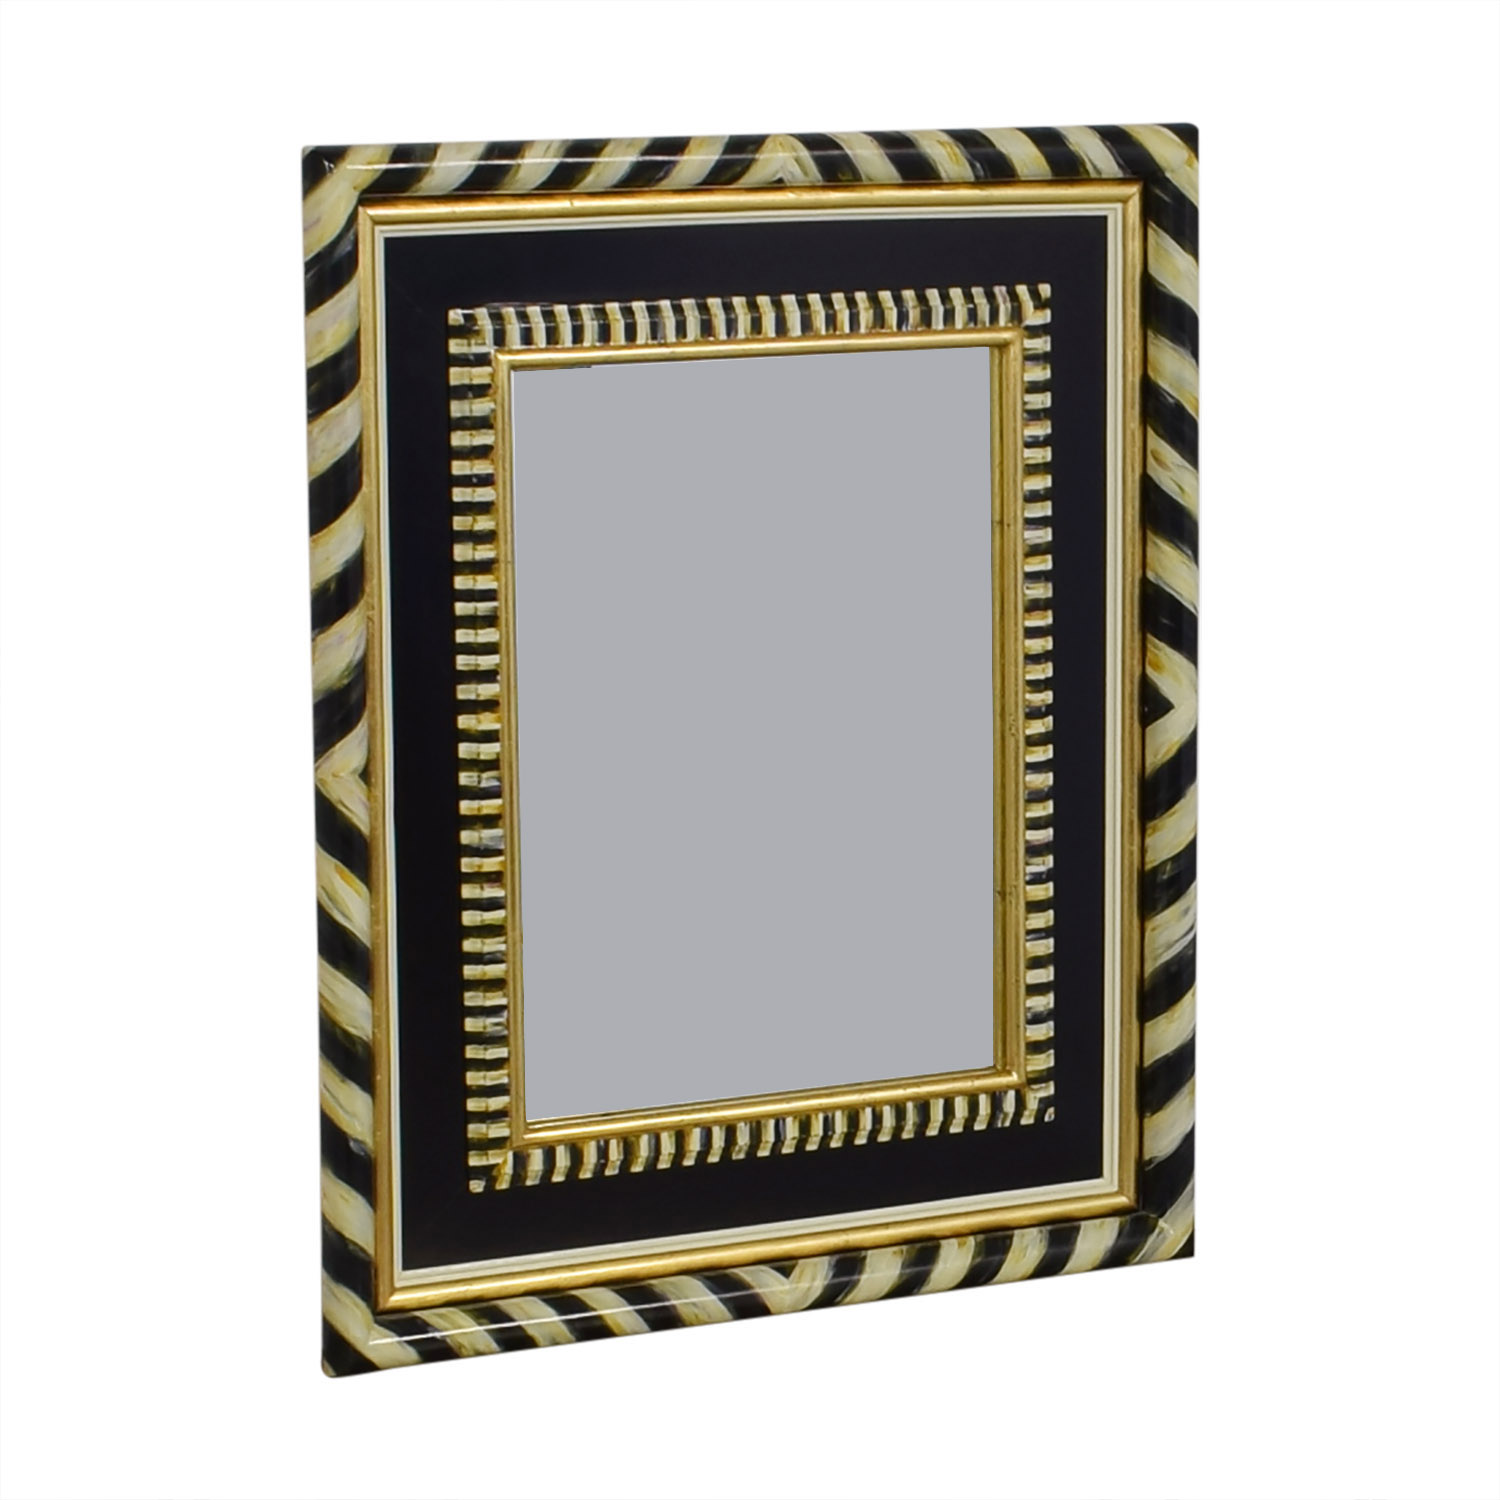 MacKenzie-Childs MacKenzie-Childs Tango Mirror used